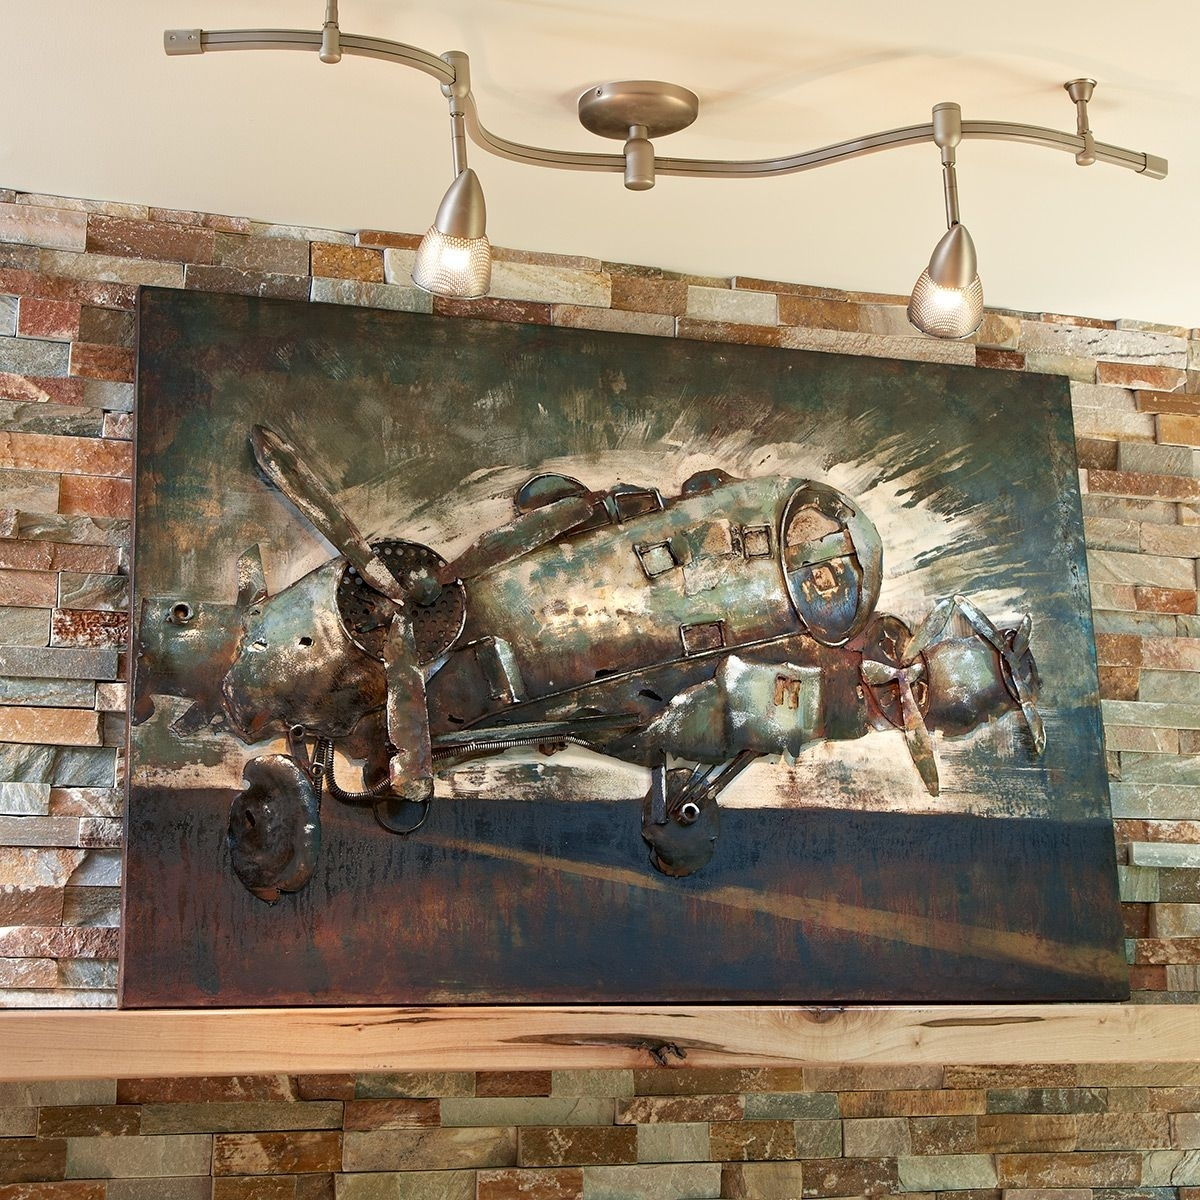 Wall Art Classy Design Aviation Wall Decor With Metal B 17 Bomber With Regard To Current Aviation Wall Art (Gallery 8 of 20)